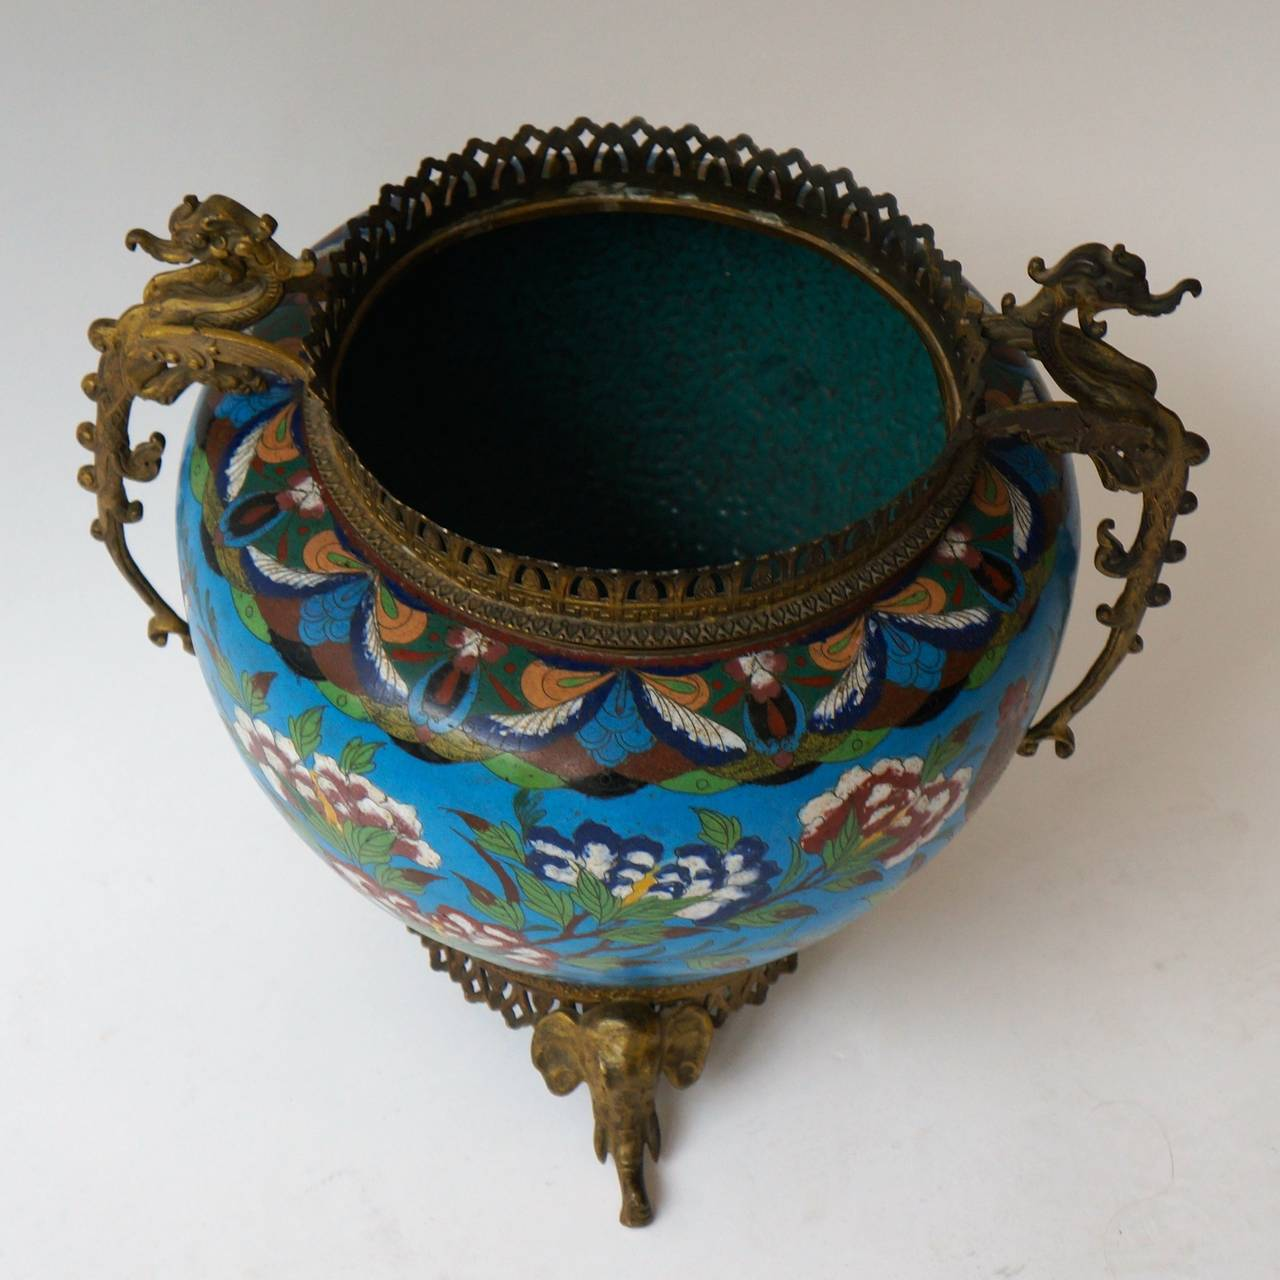 Enamel Large Chinese Cloisonné Jardinière or Planter Pot For Sale